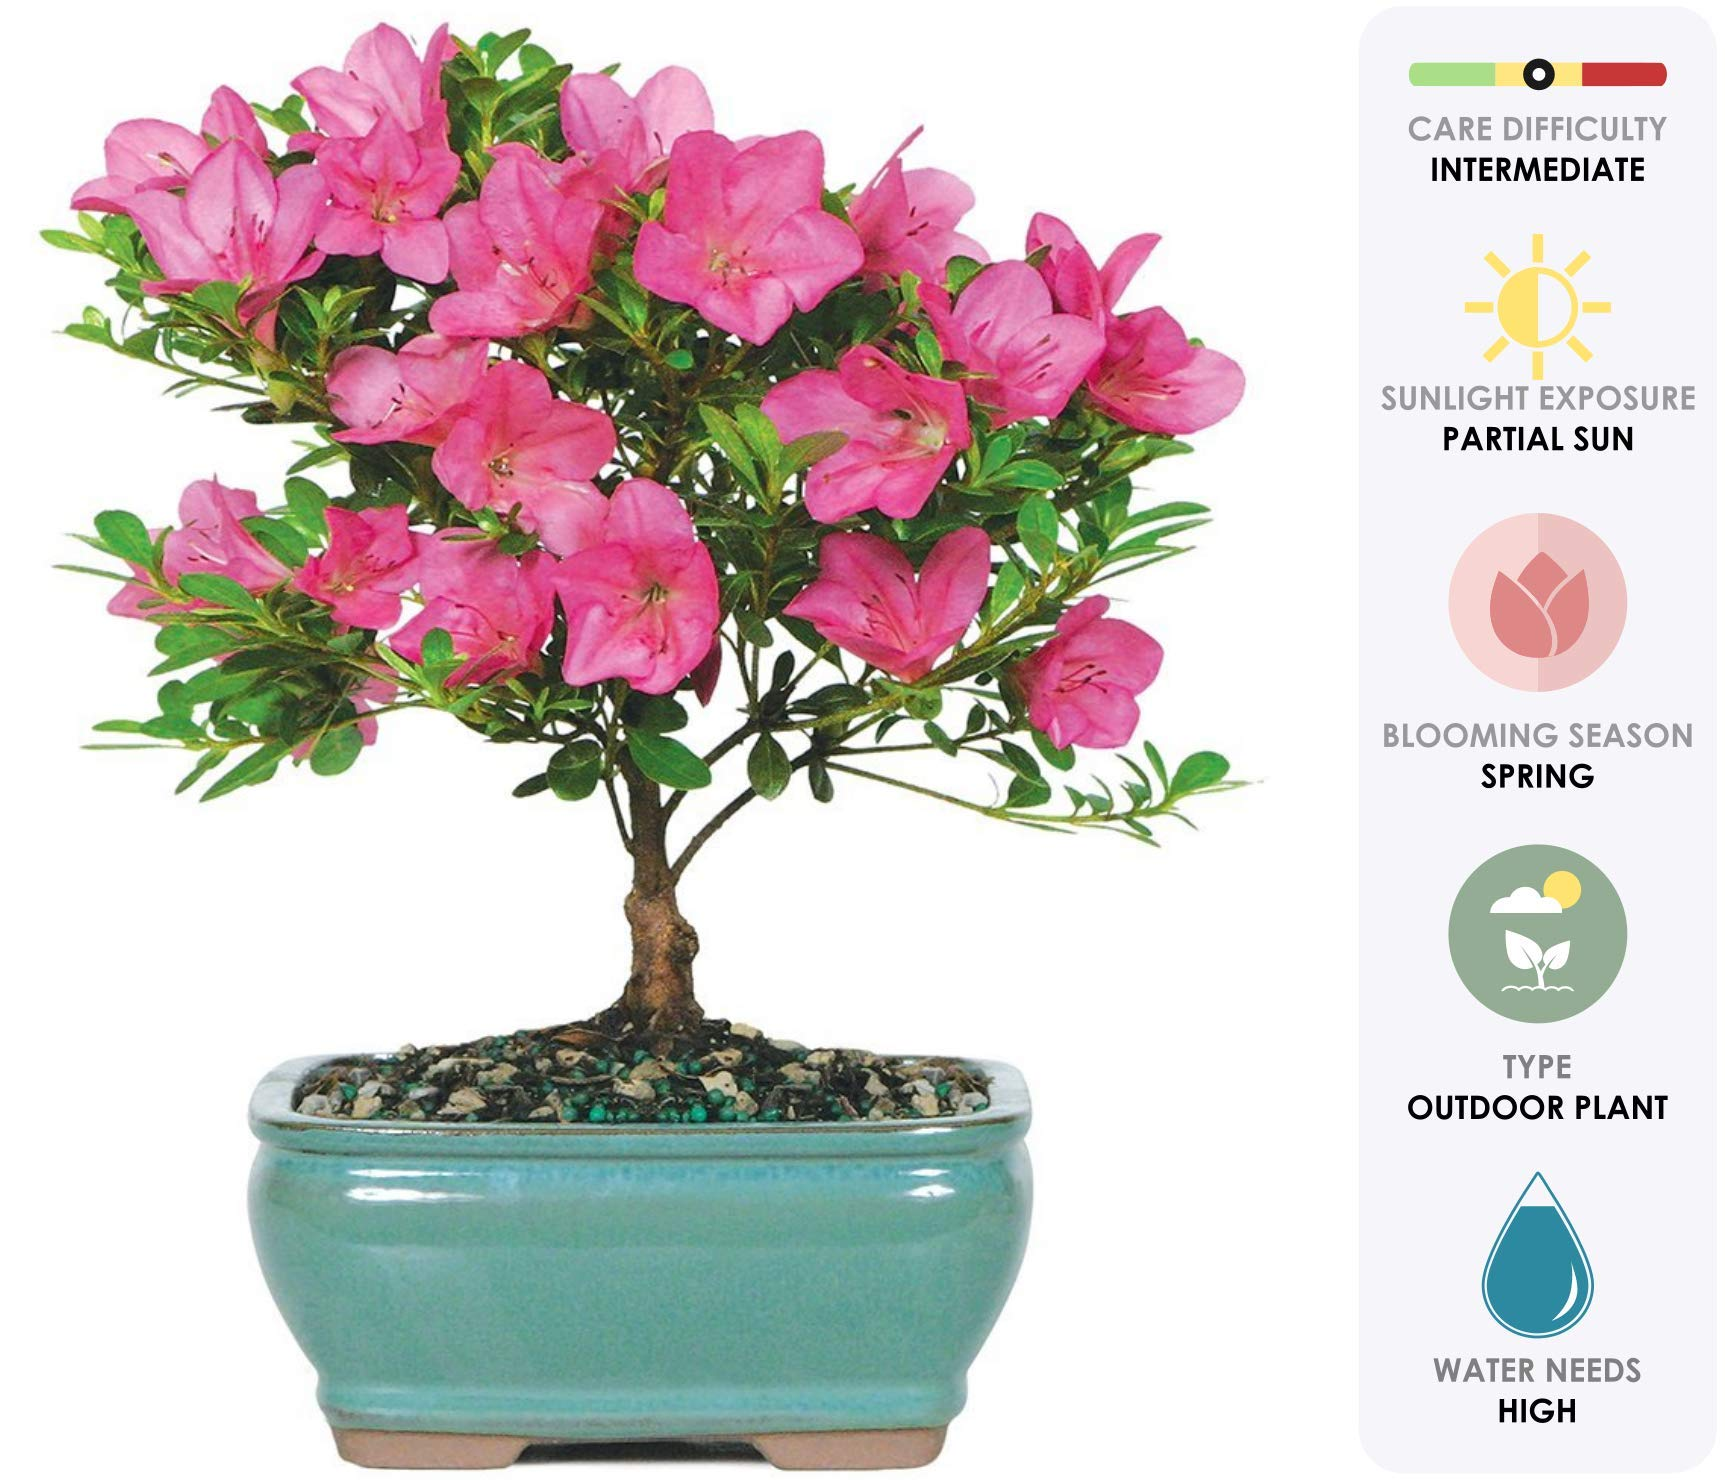 Brussel's Live Satsuki Azalea Outdoor Bonsai Tree - 5 Years Old; 6'' to 8'' Tall with Decorative Container